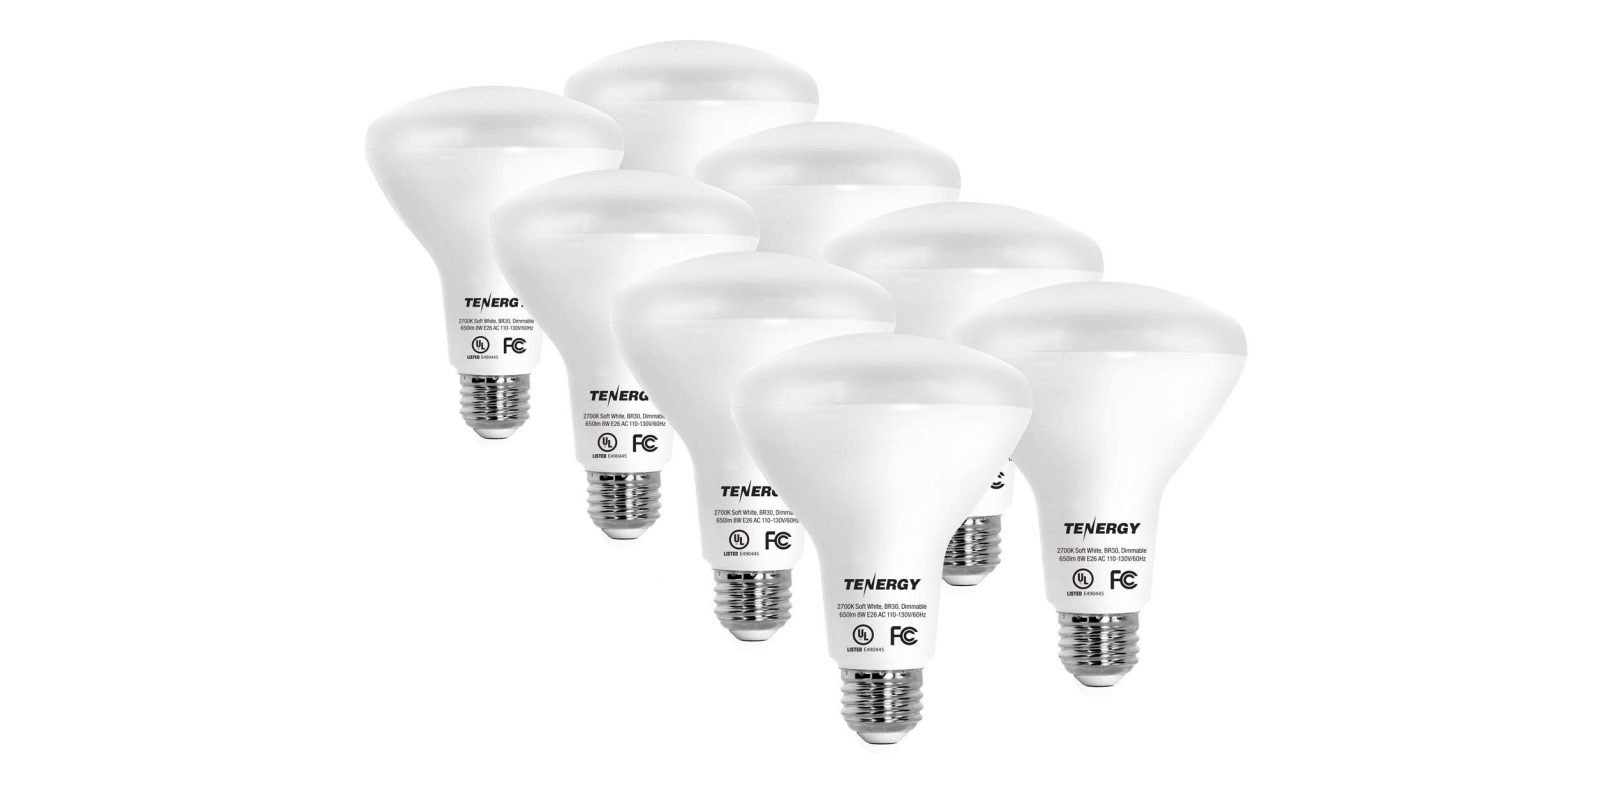 Green Deals 8 Pack Tenergy Br30 Led Light Bulbs 22 More Electrek Descargar Circuit Wizard Gratis